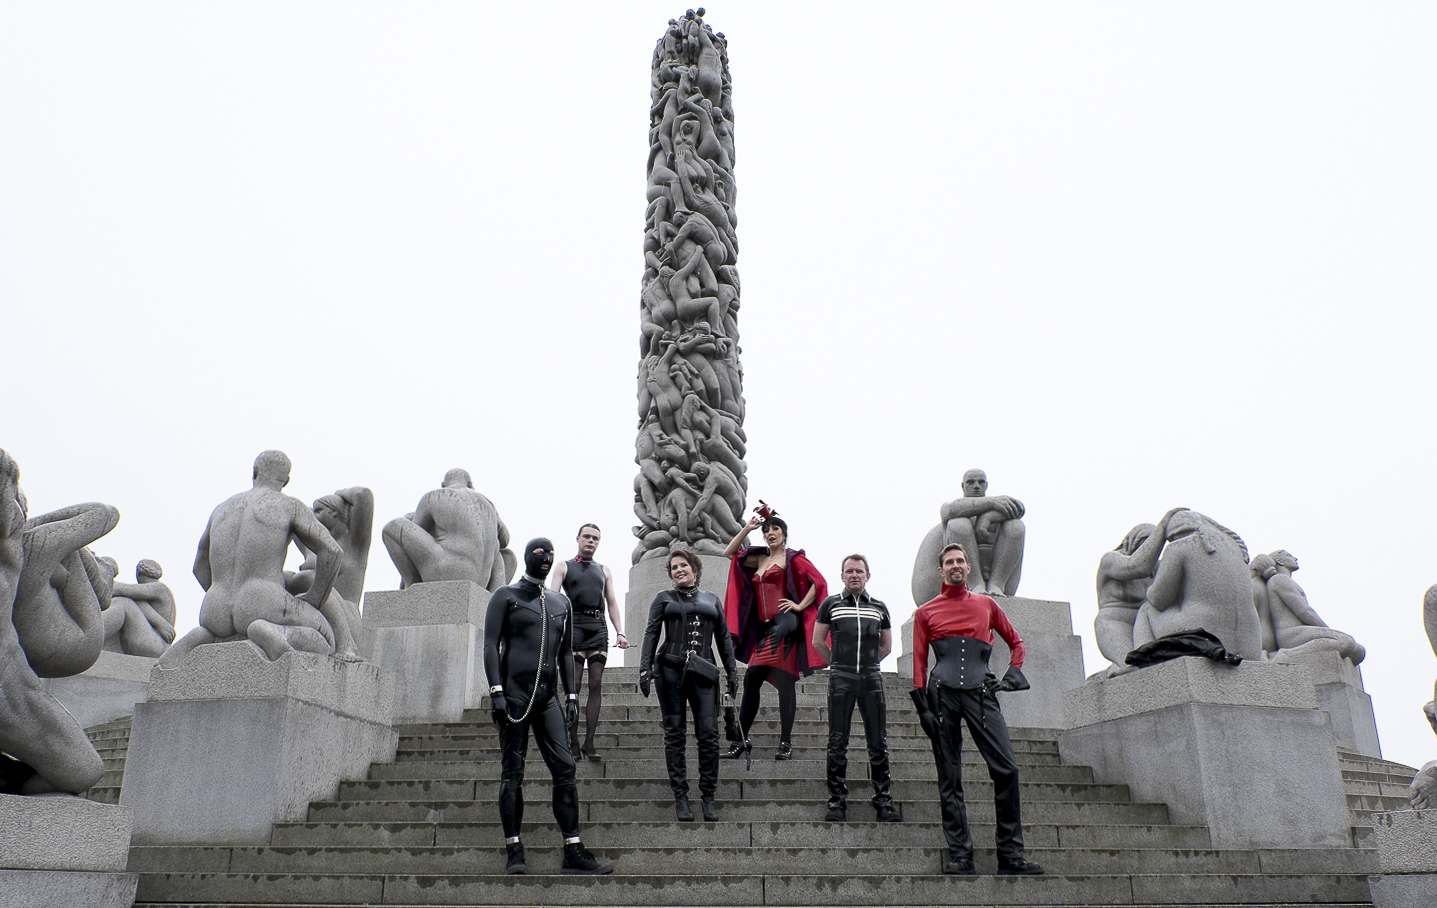 A fetish group in the Vigeland Park in Oslo